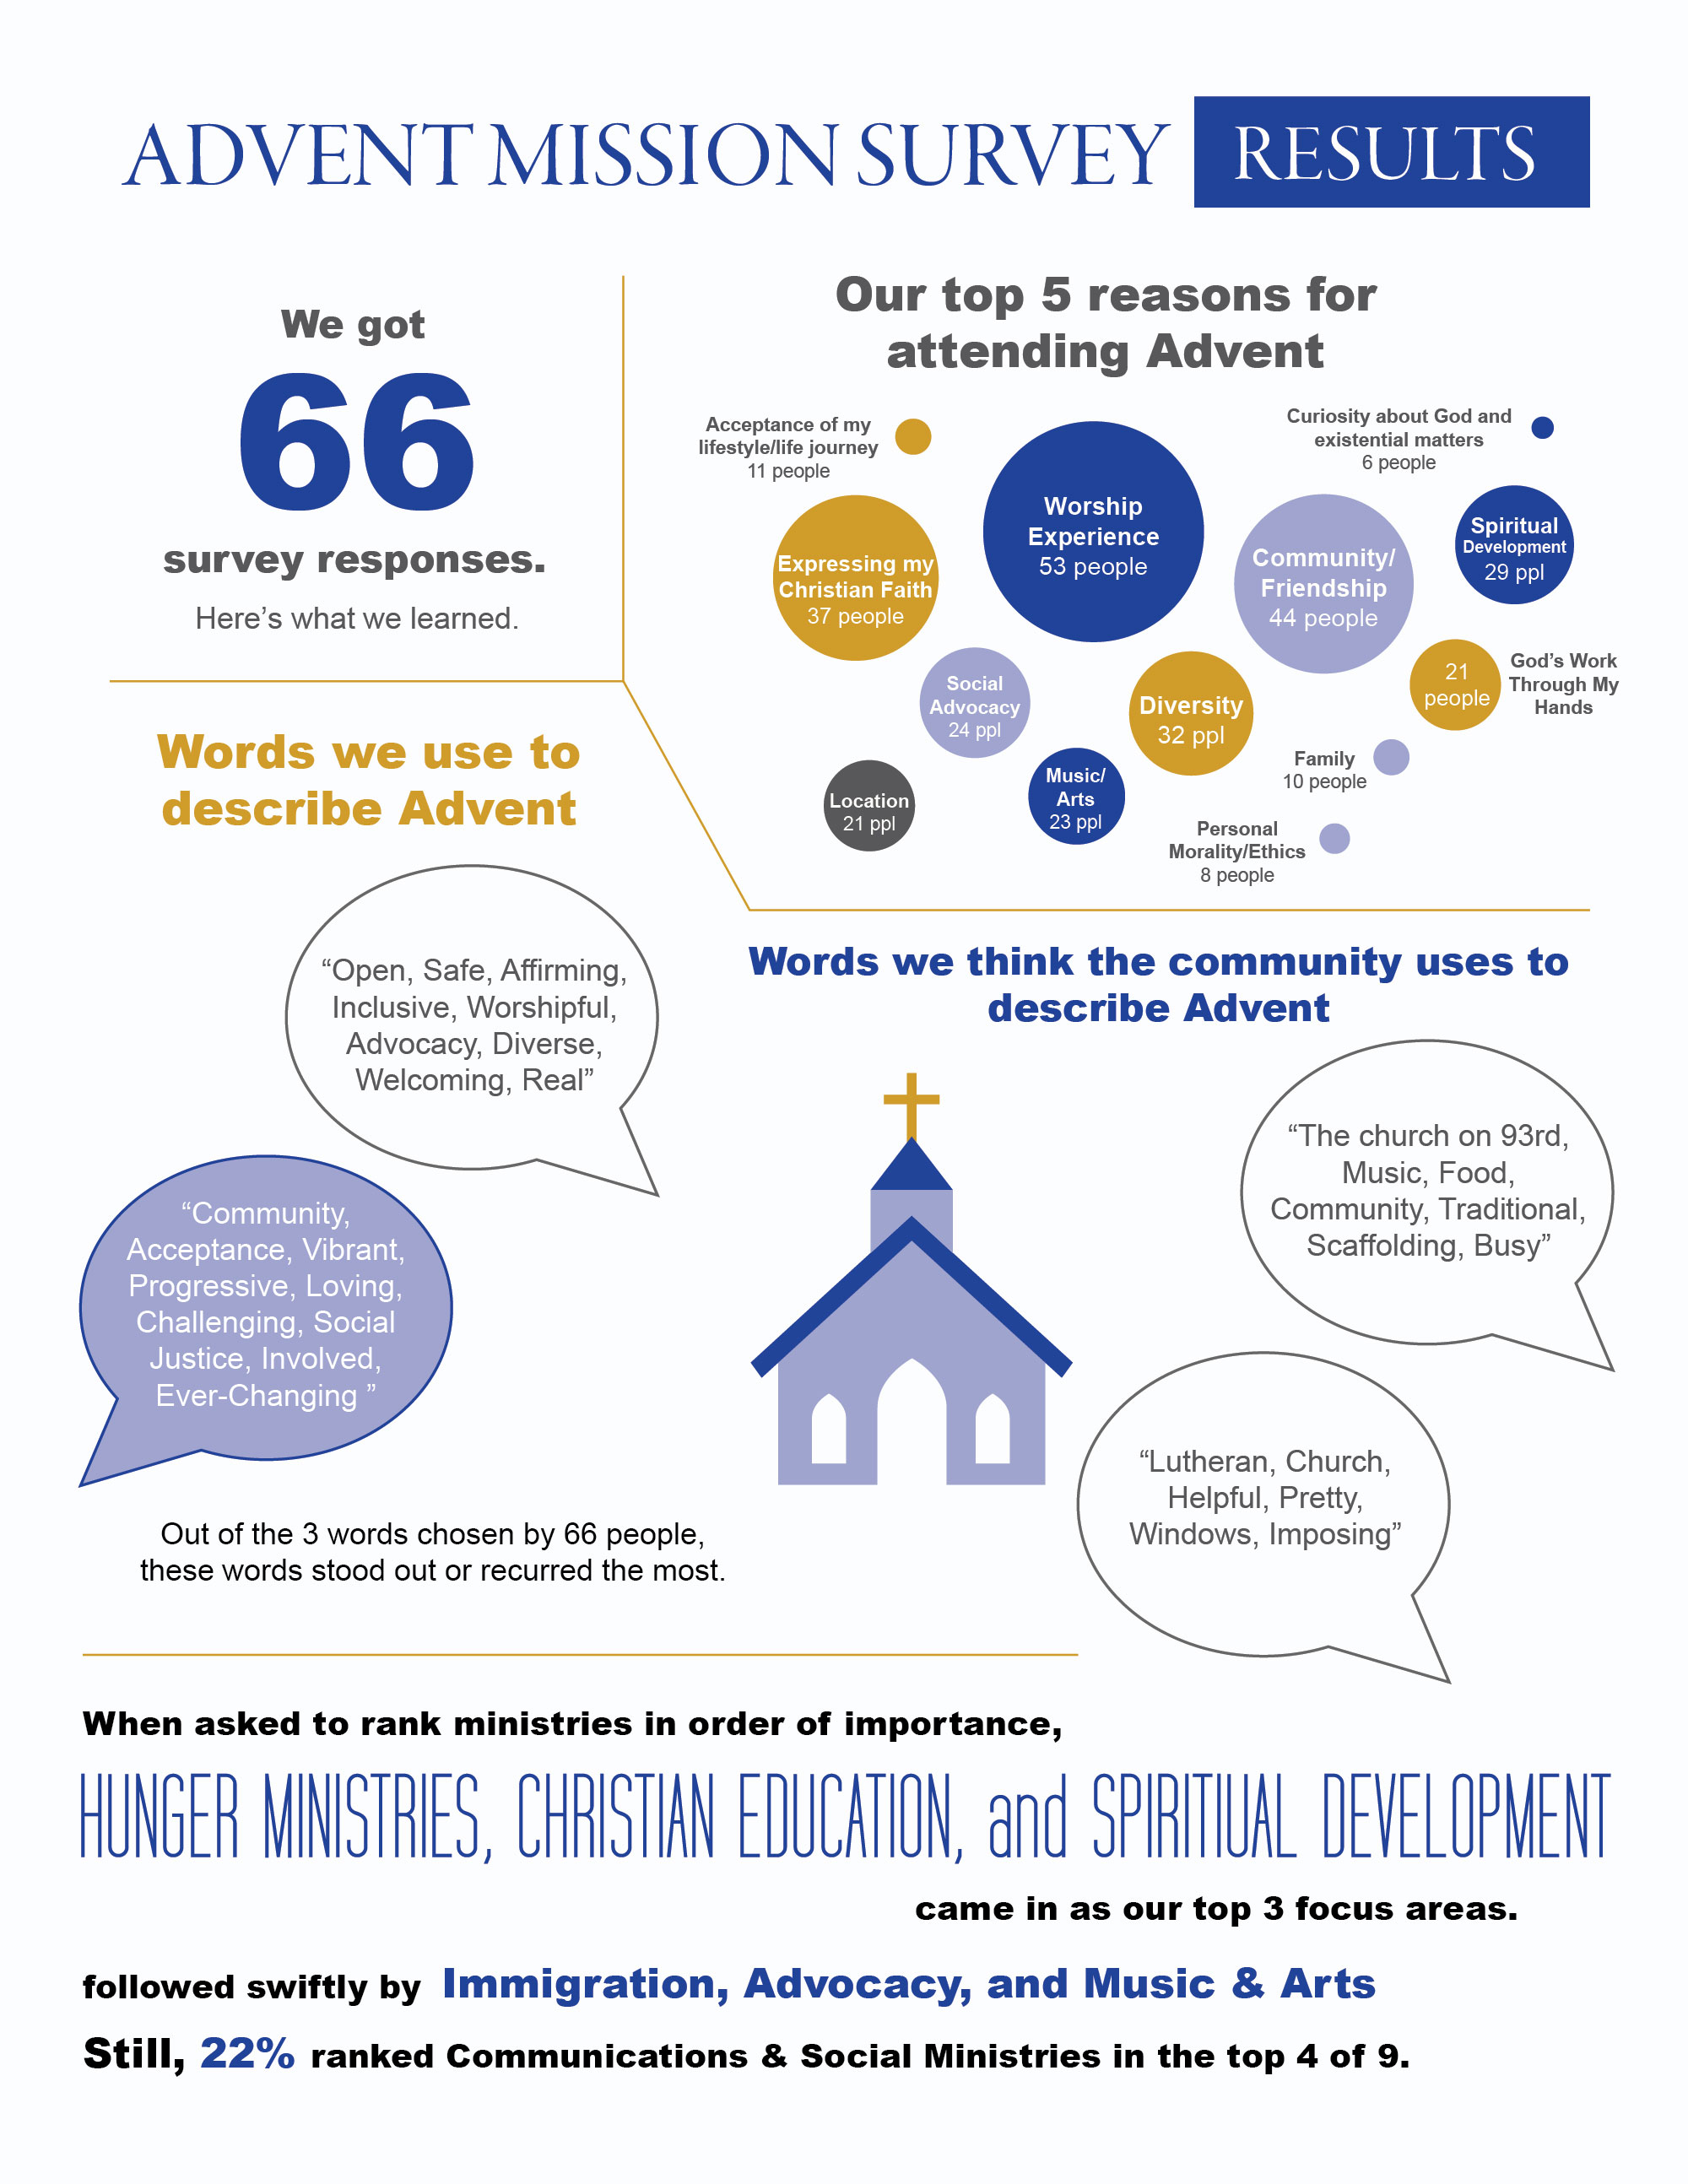 Advent-Mission-Survey-Results-infographic_pg1.jpg